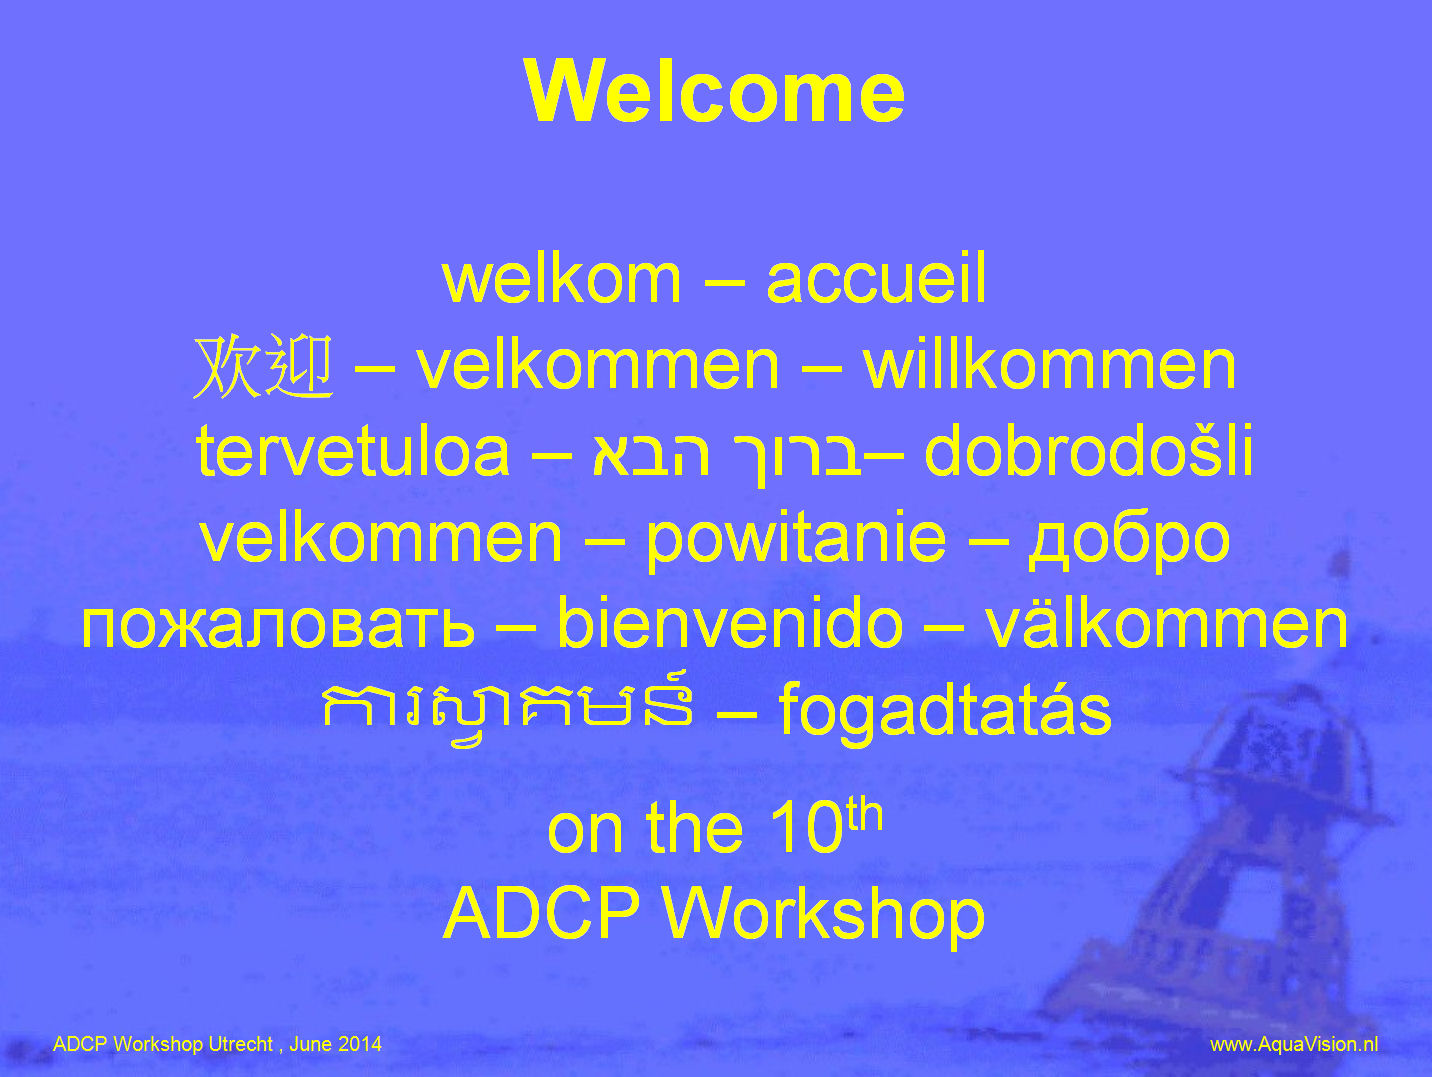 ADCP workshop 2014